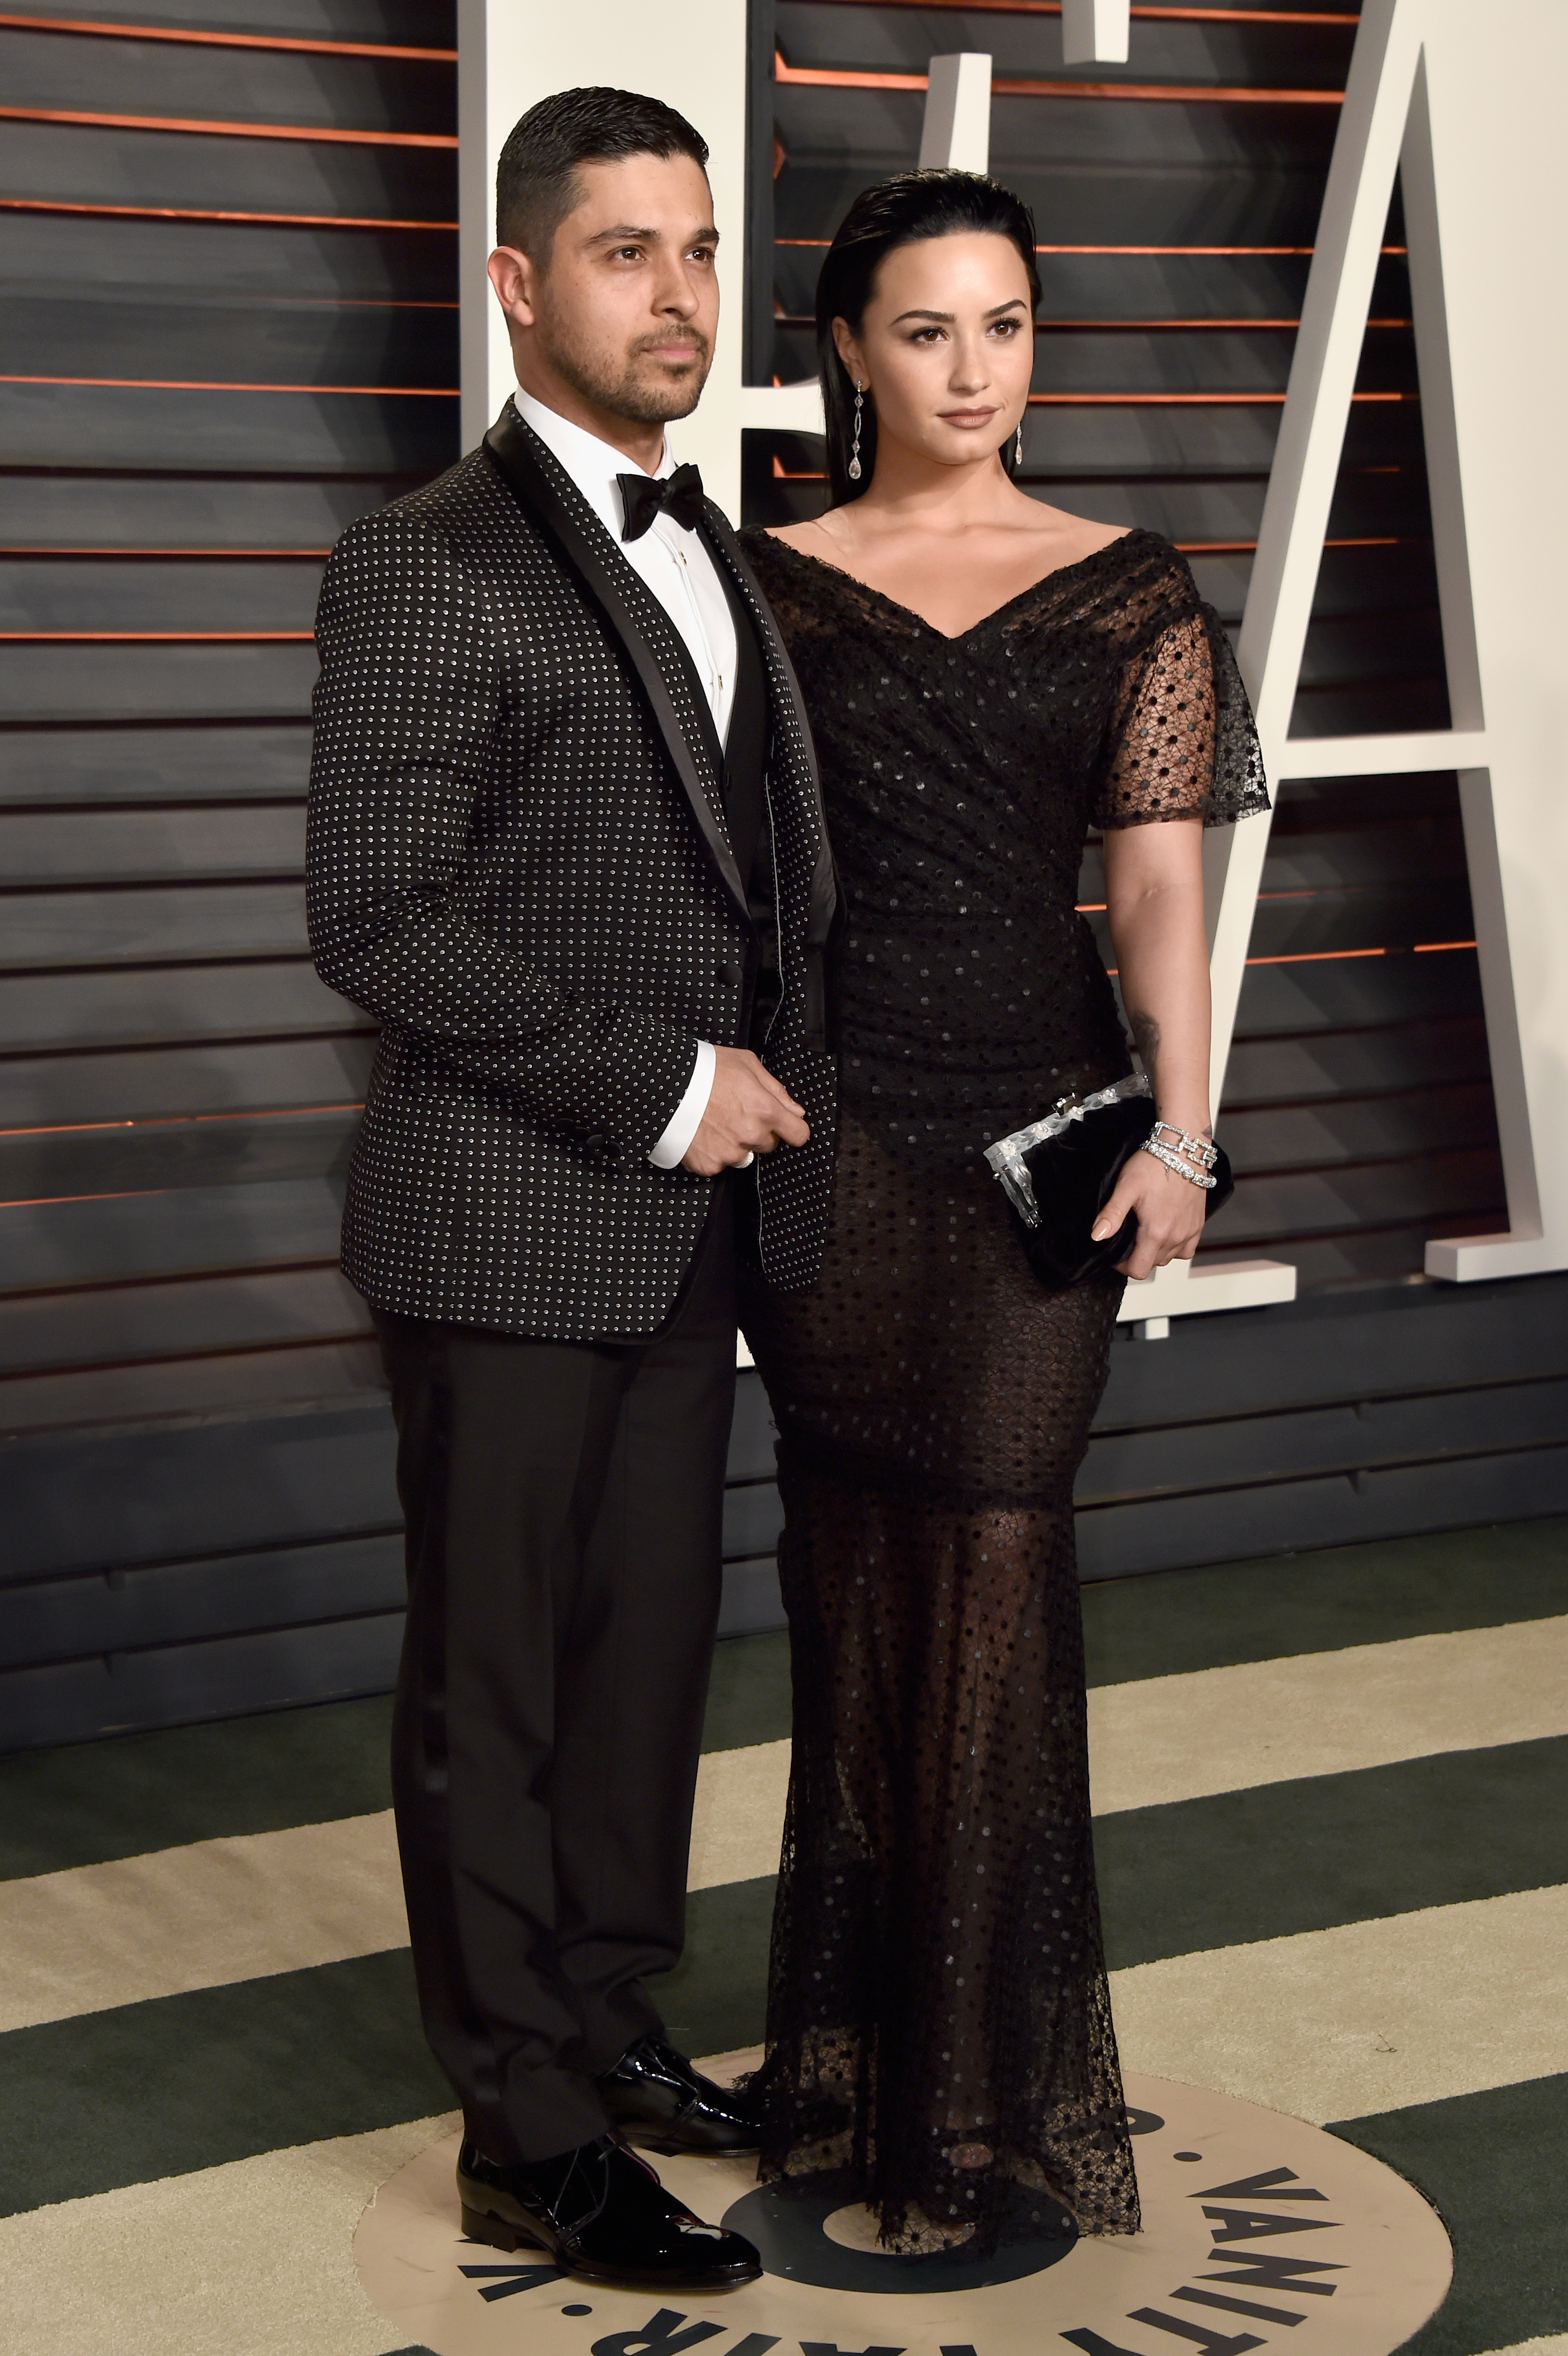 Actor Wilmer Valderrama (L) and singer Demi Lovato attend the 2016 Vanity Fair Oscar Party Hosted By Graydon Carter at the Wallis Annenberg Center for the Performing Arts on February 28, 2016 in Beverly Hills, California.